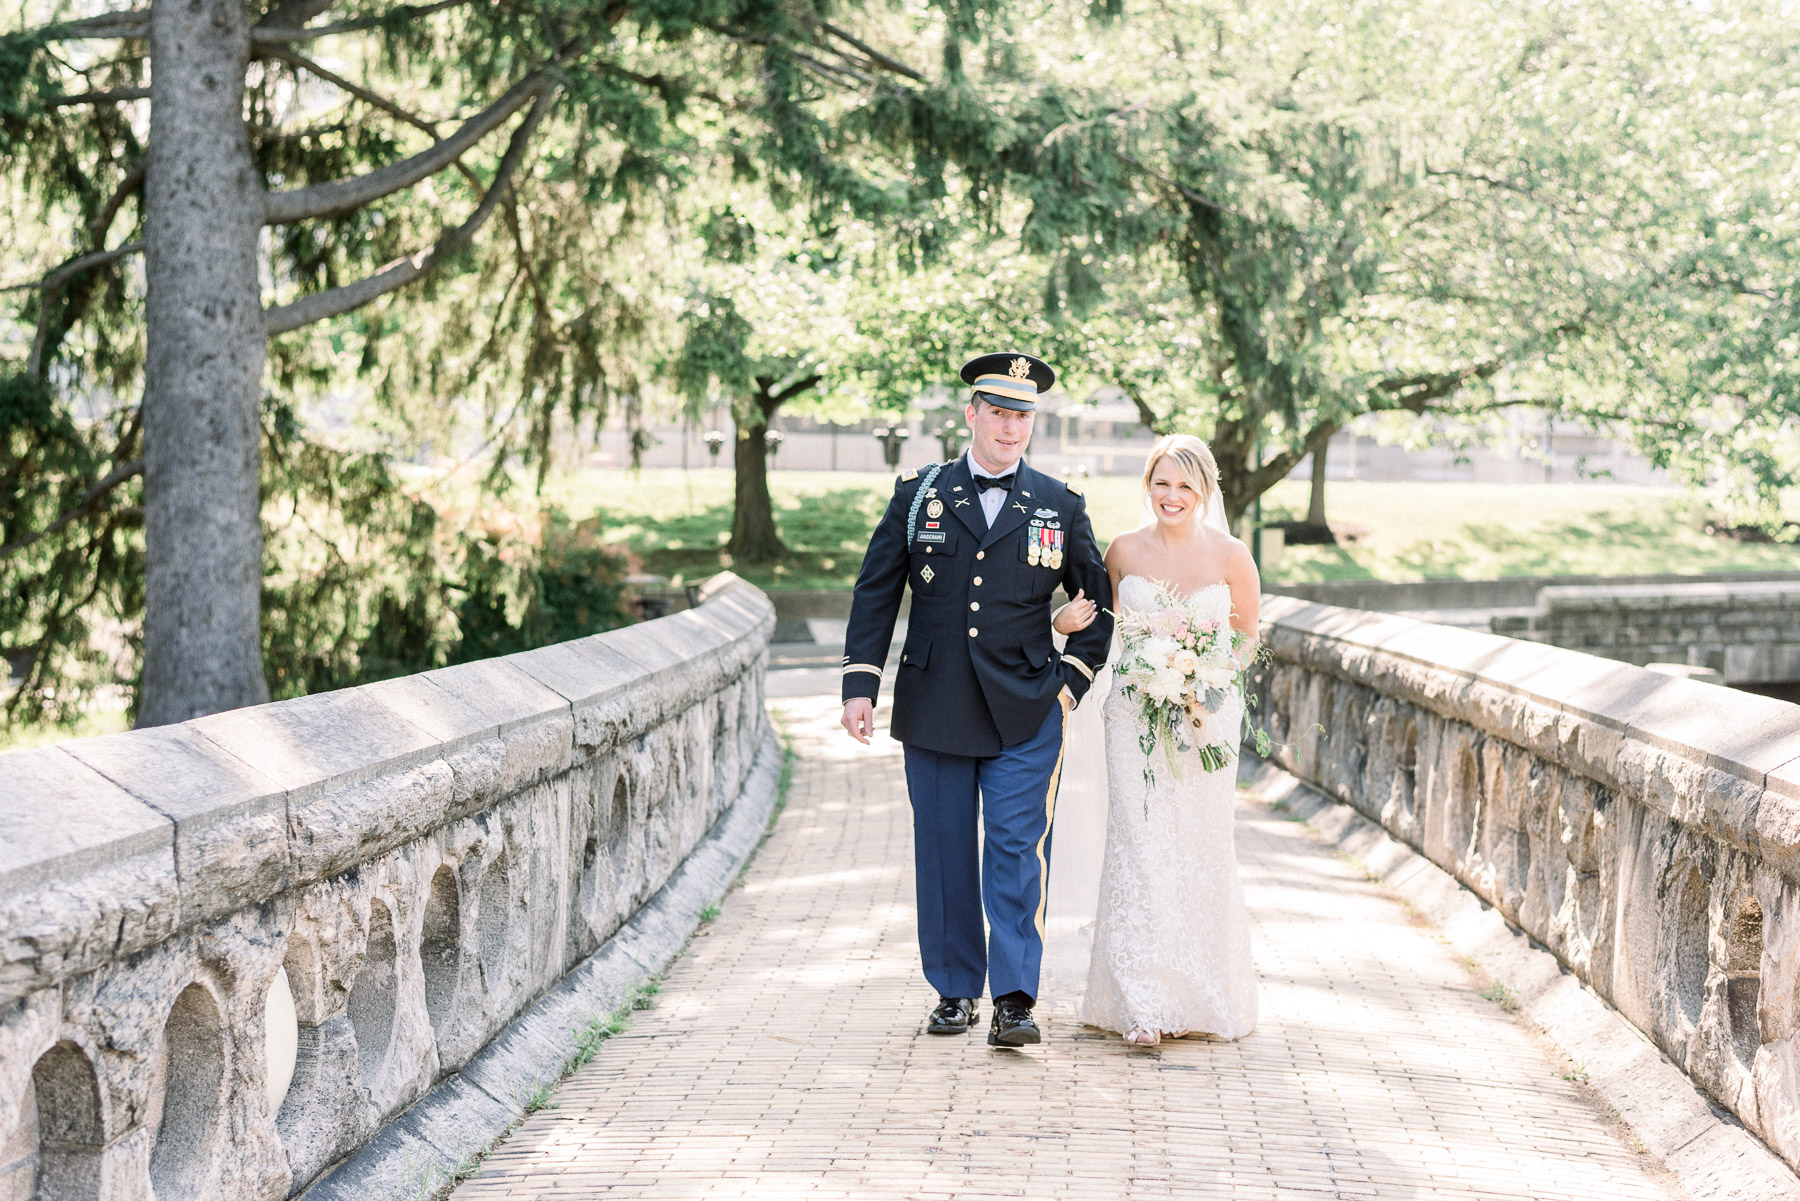 West Point Wedding by Michelle Lange Photography-48.jpg